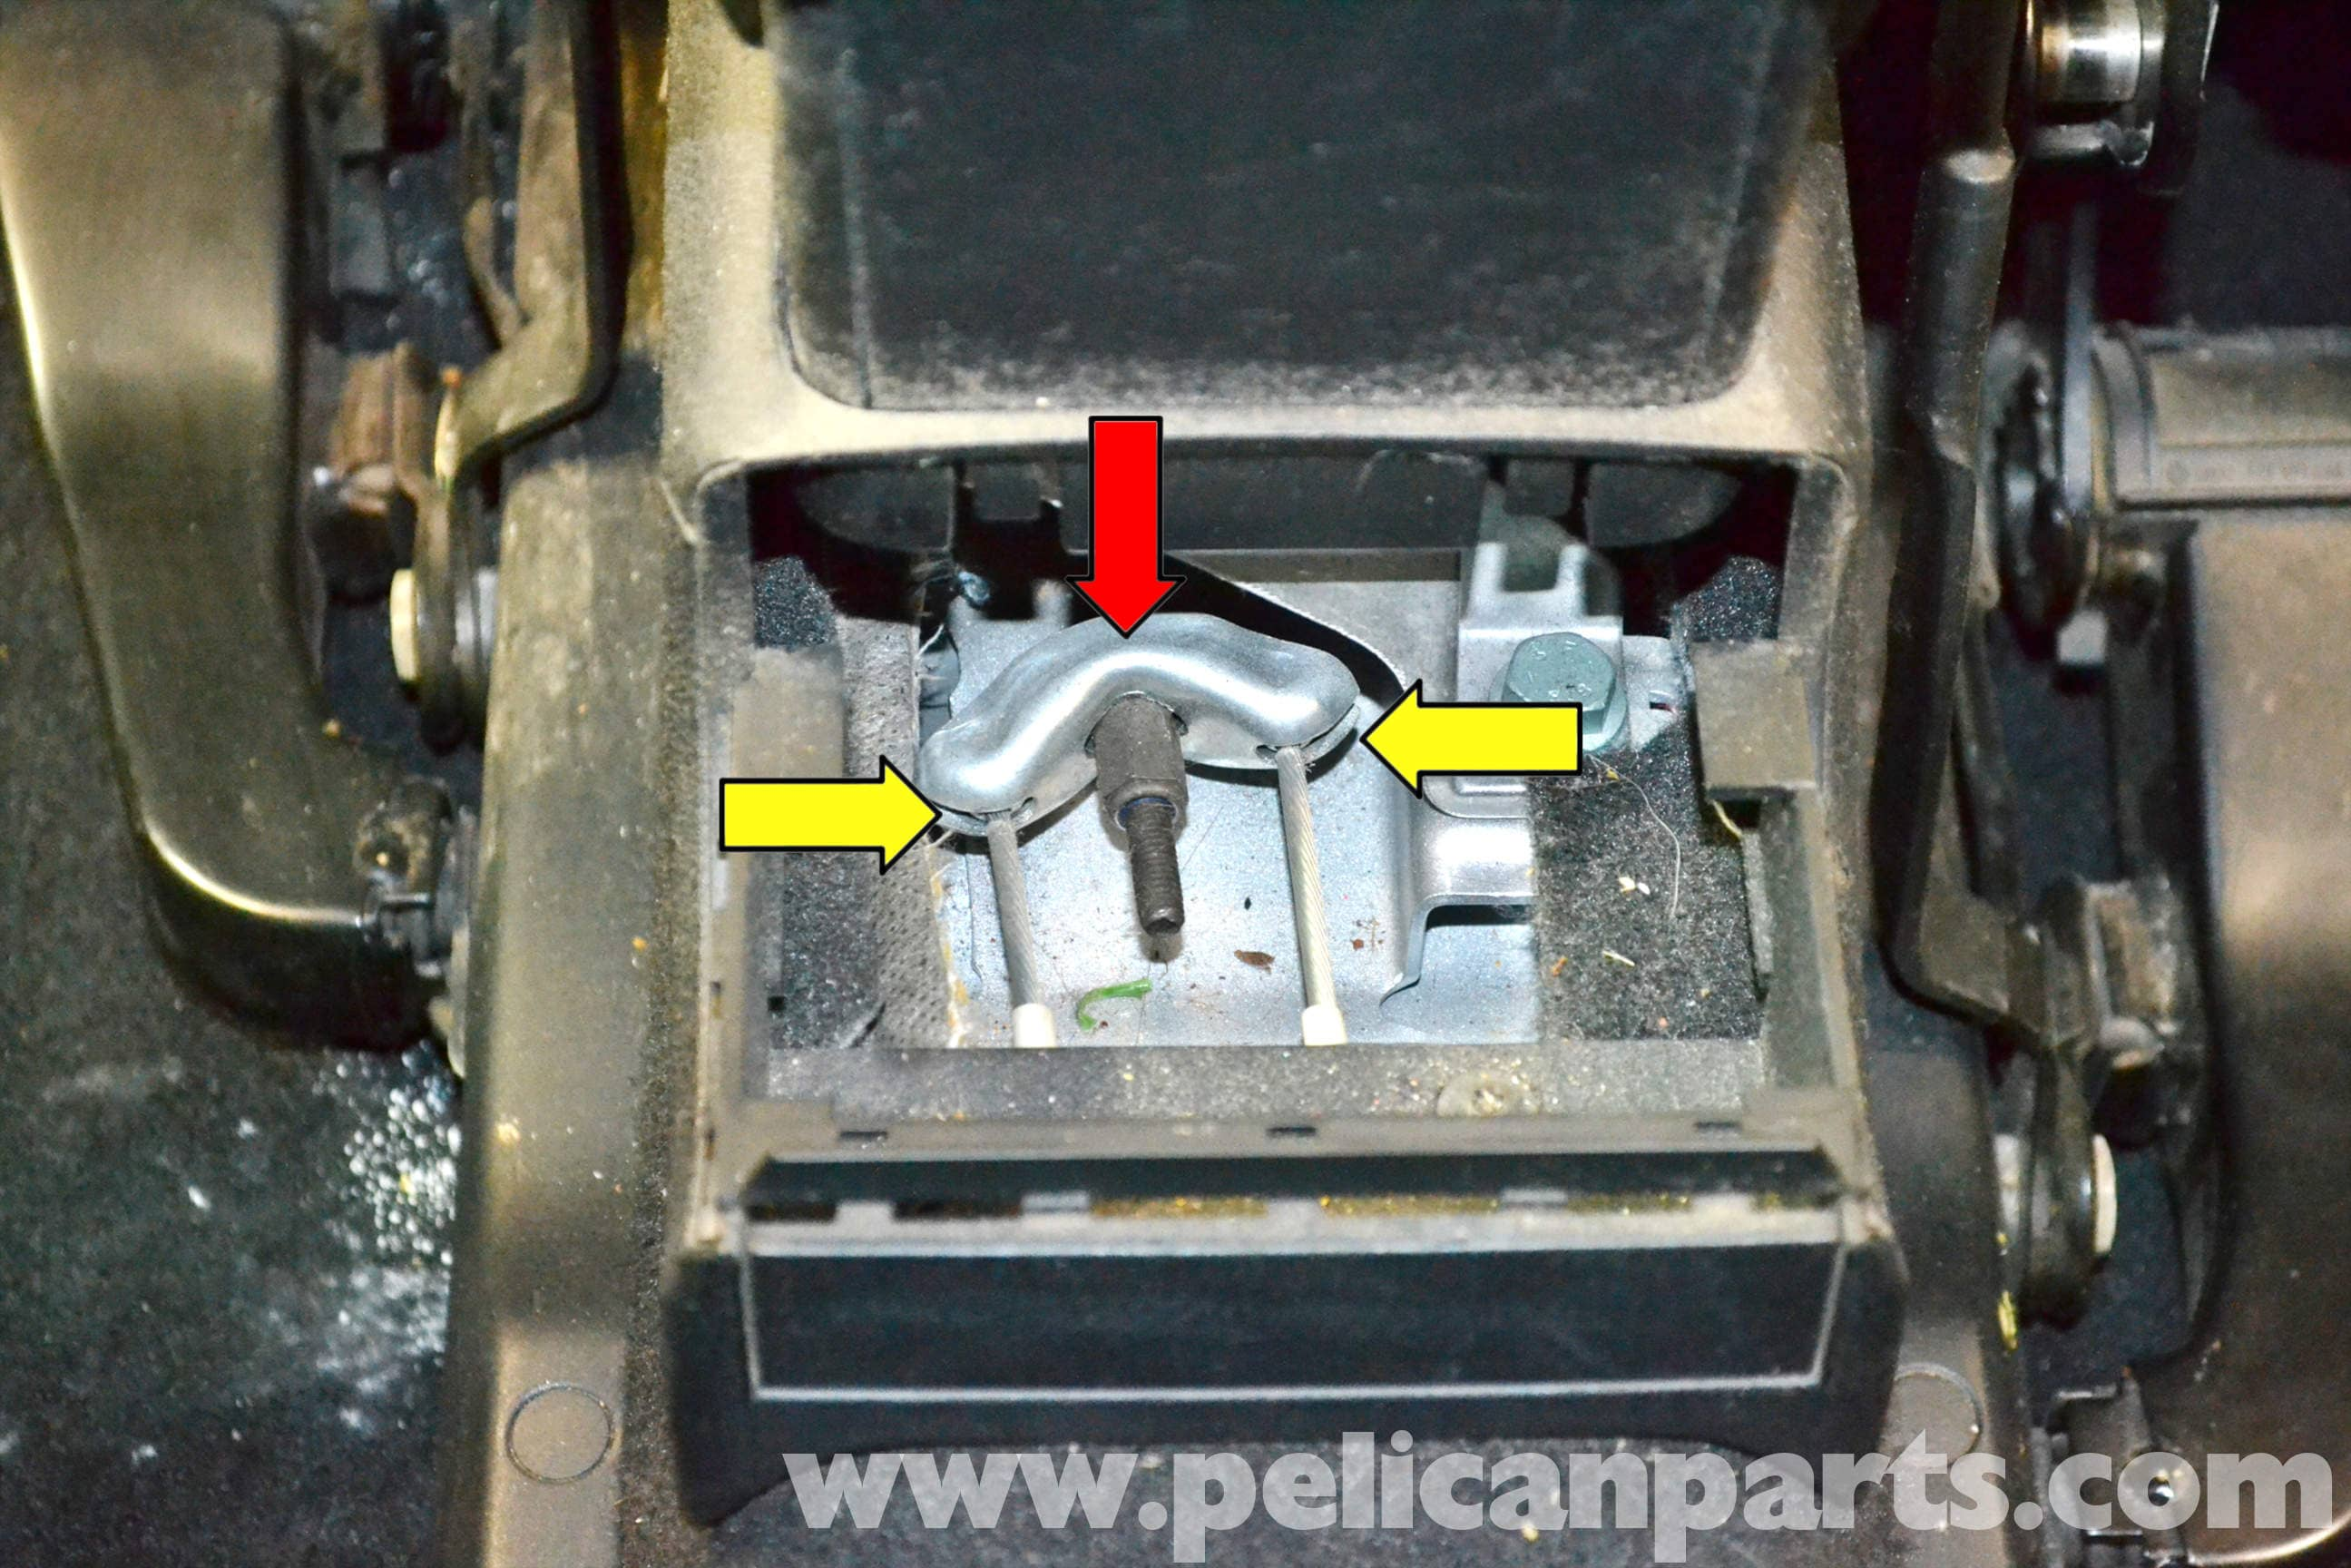 Volkswagen Golf Gti Mk Iv Parking Brake Adjustment And